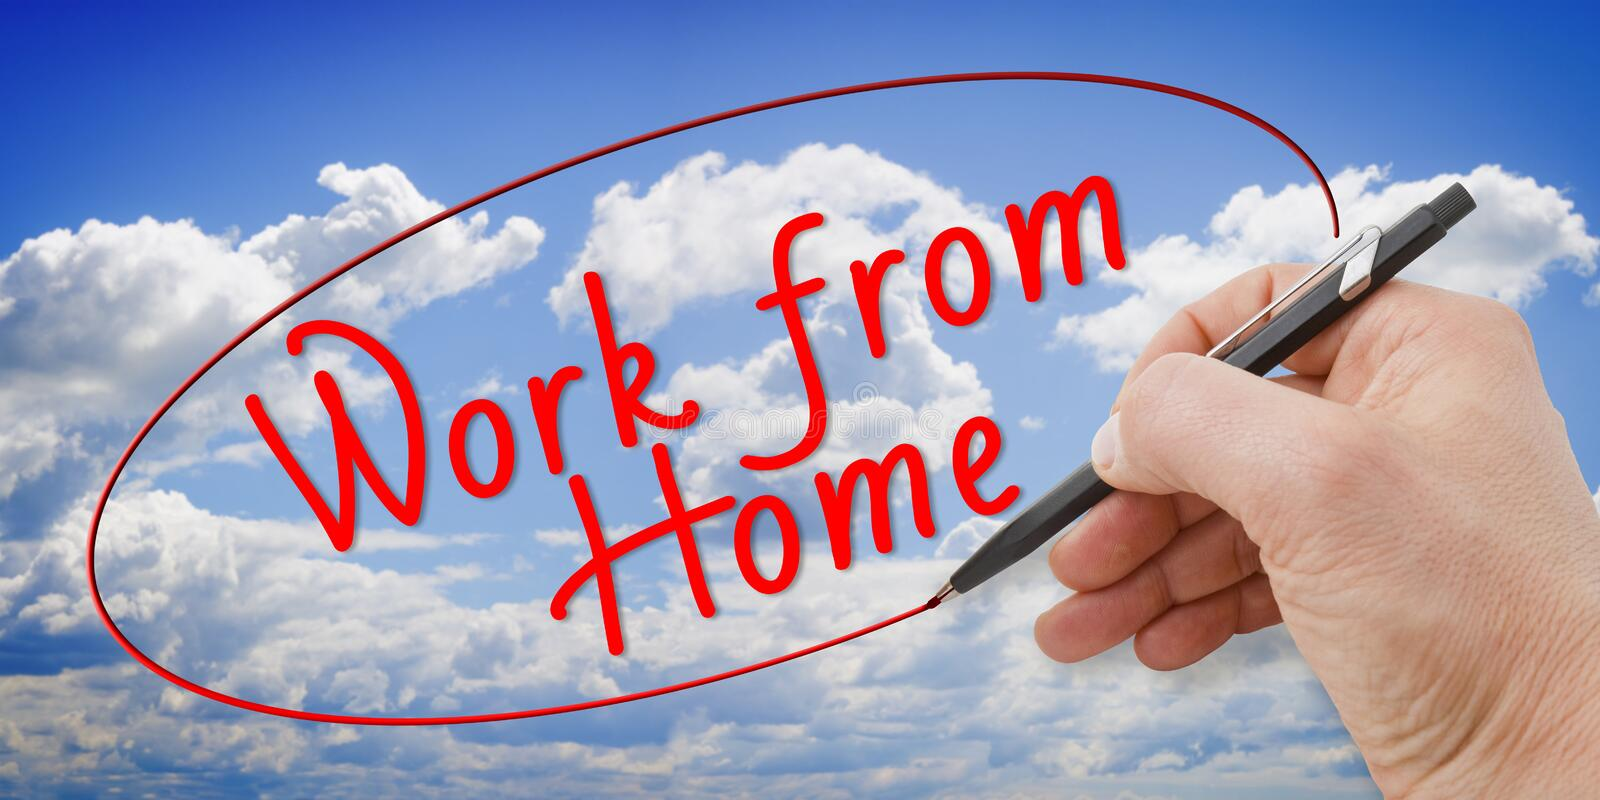 Hand writing Work from home - With new technology you can work at home - Concept image stock photos